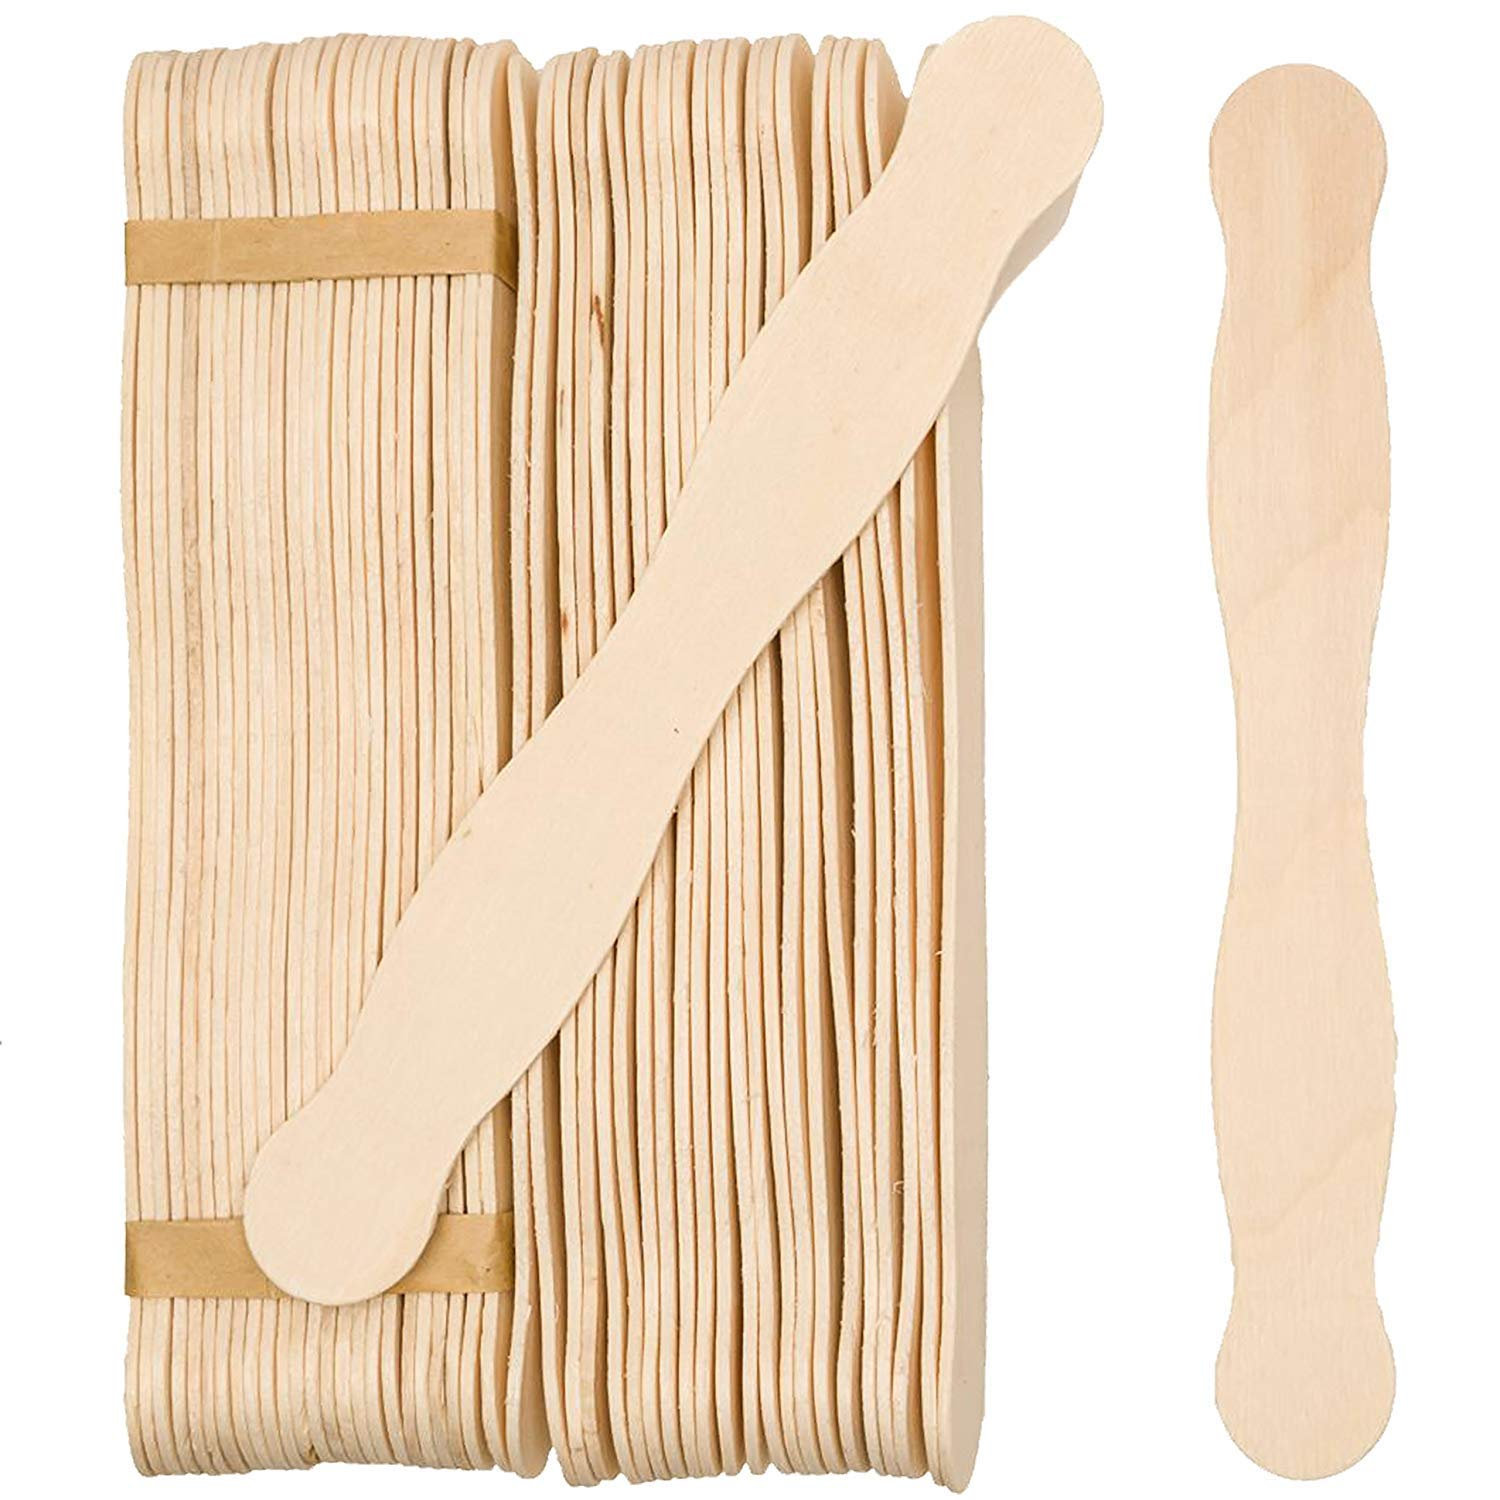 """Wooden 8"""" Fan Handles, Wedding Programs, or Paint Mixing, Pack 500, Jumbo Craft Popsicle Sticks for Auction Bid Paddles, Wooden Wavy Flat Stems for Any DIY Crafting Supplies Kit, by Woodpeckers"""